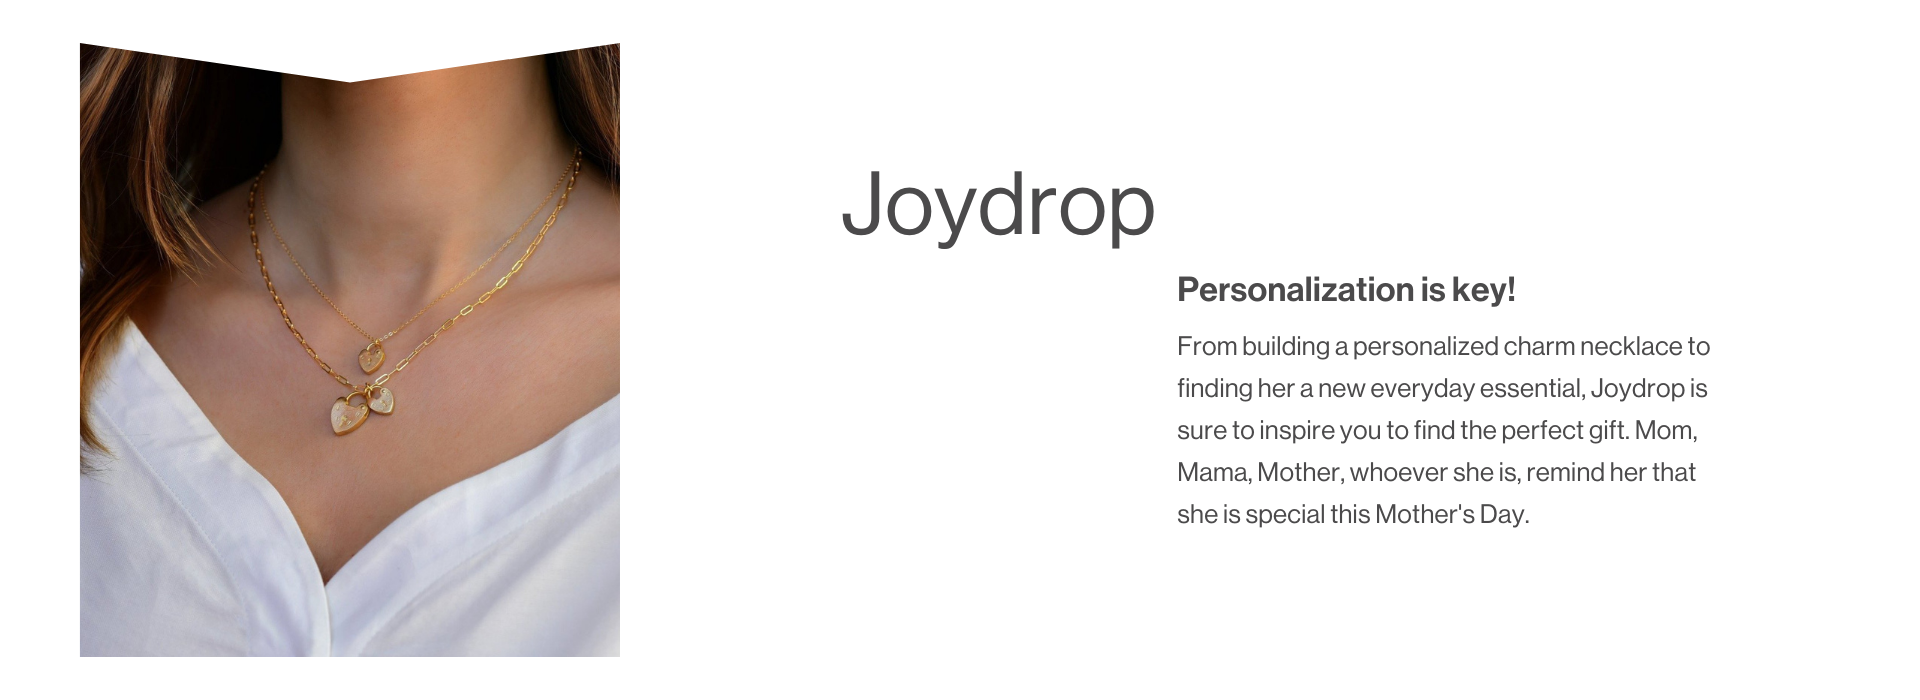 Gold necklace from JoyDrop